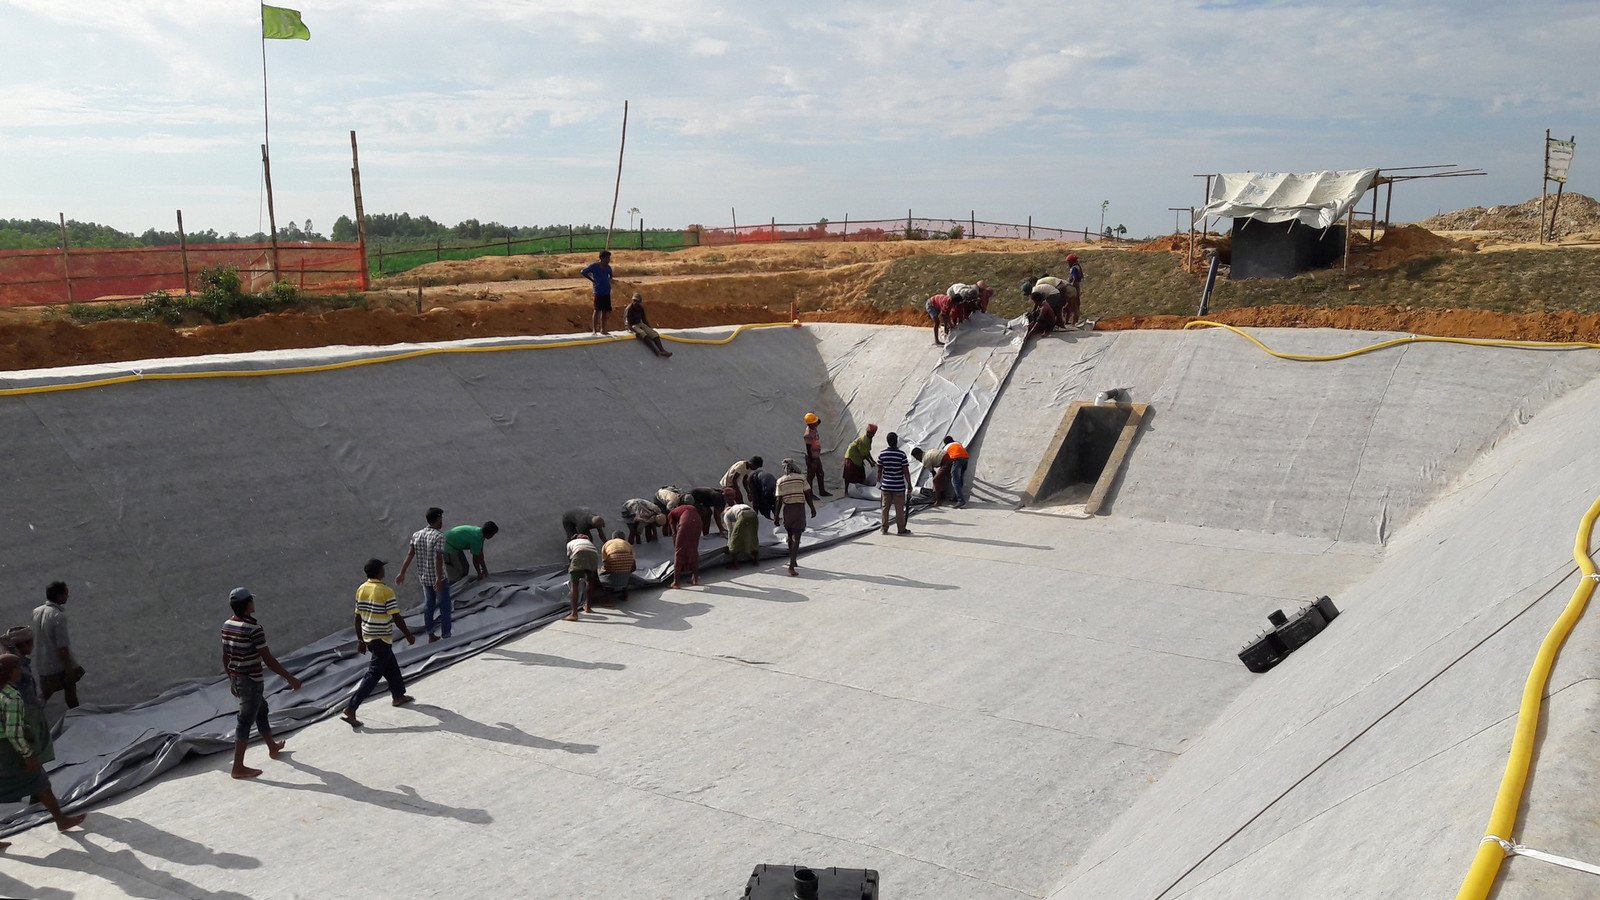 This waste treatment plant was built by Rohingya refugees and Oxfam's engineers.